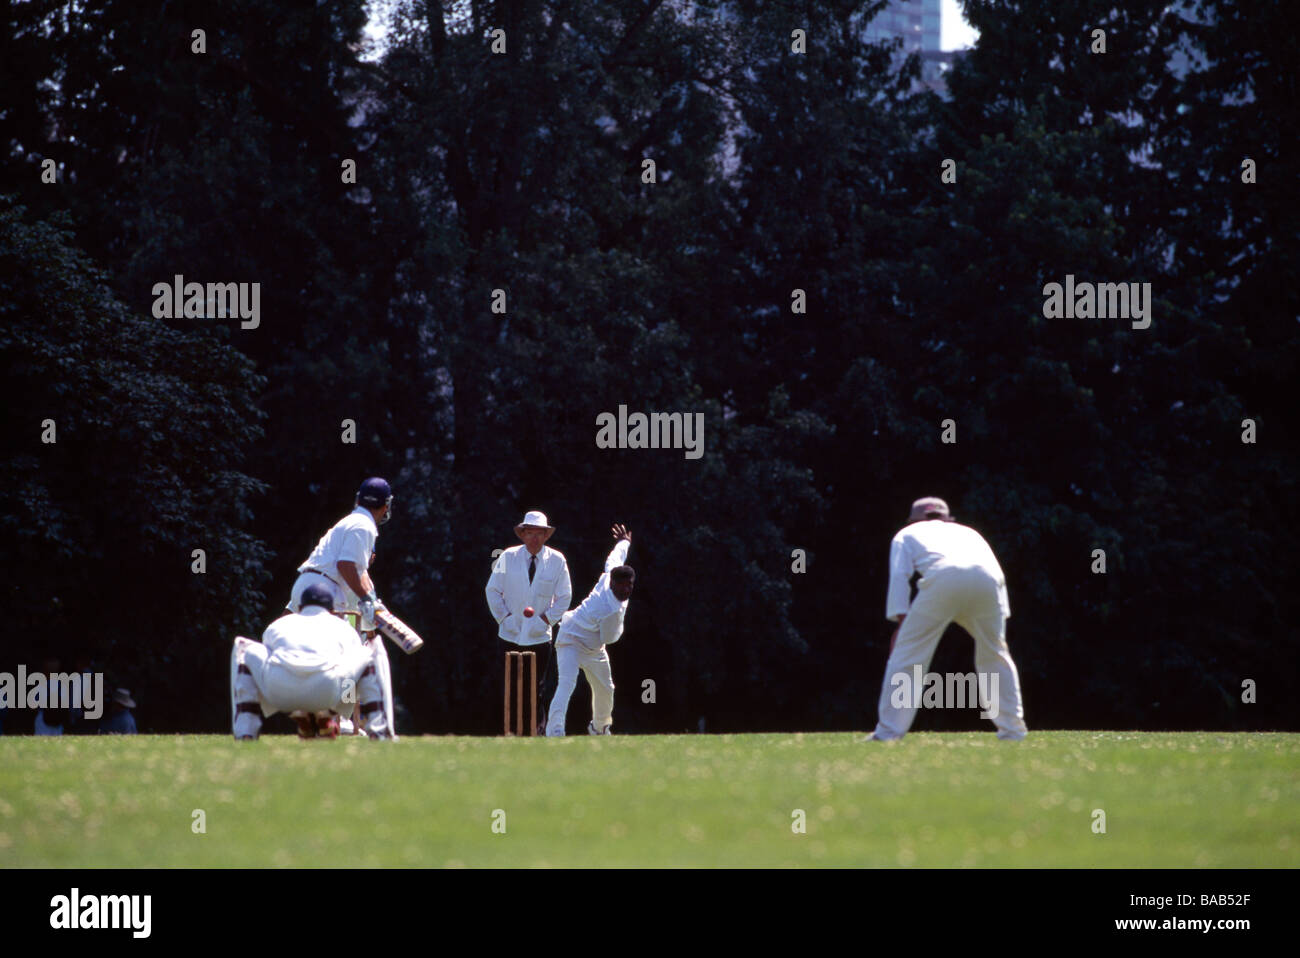 Cricket Bowler delivering Ball to Batsman in Cricket Match on the Stanley Park Pitch Ground in Vancouver British - Stock Image